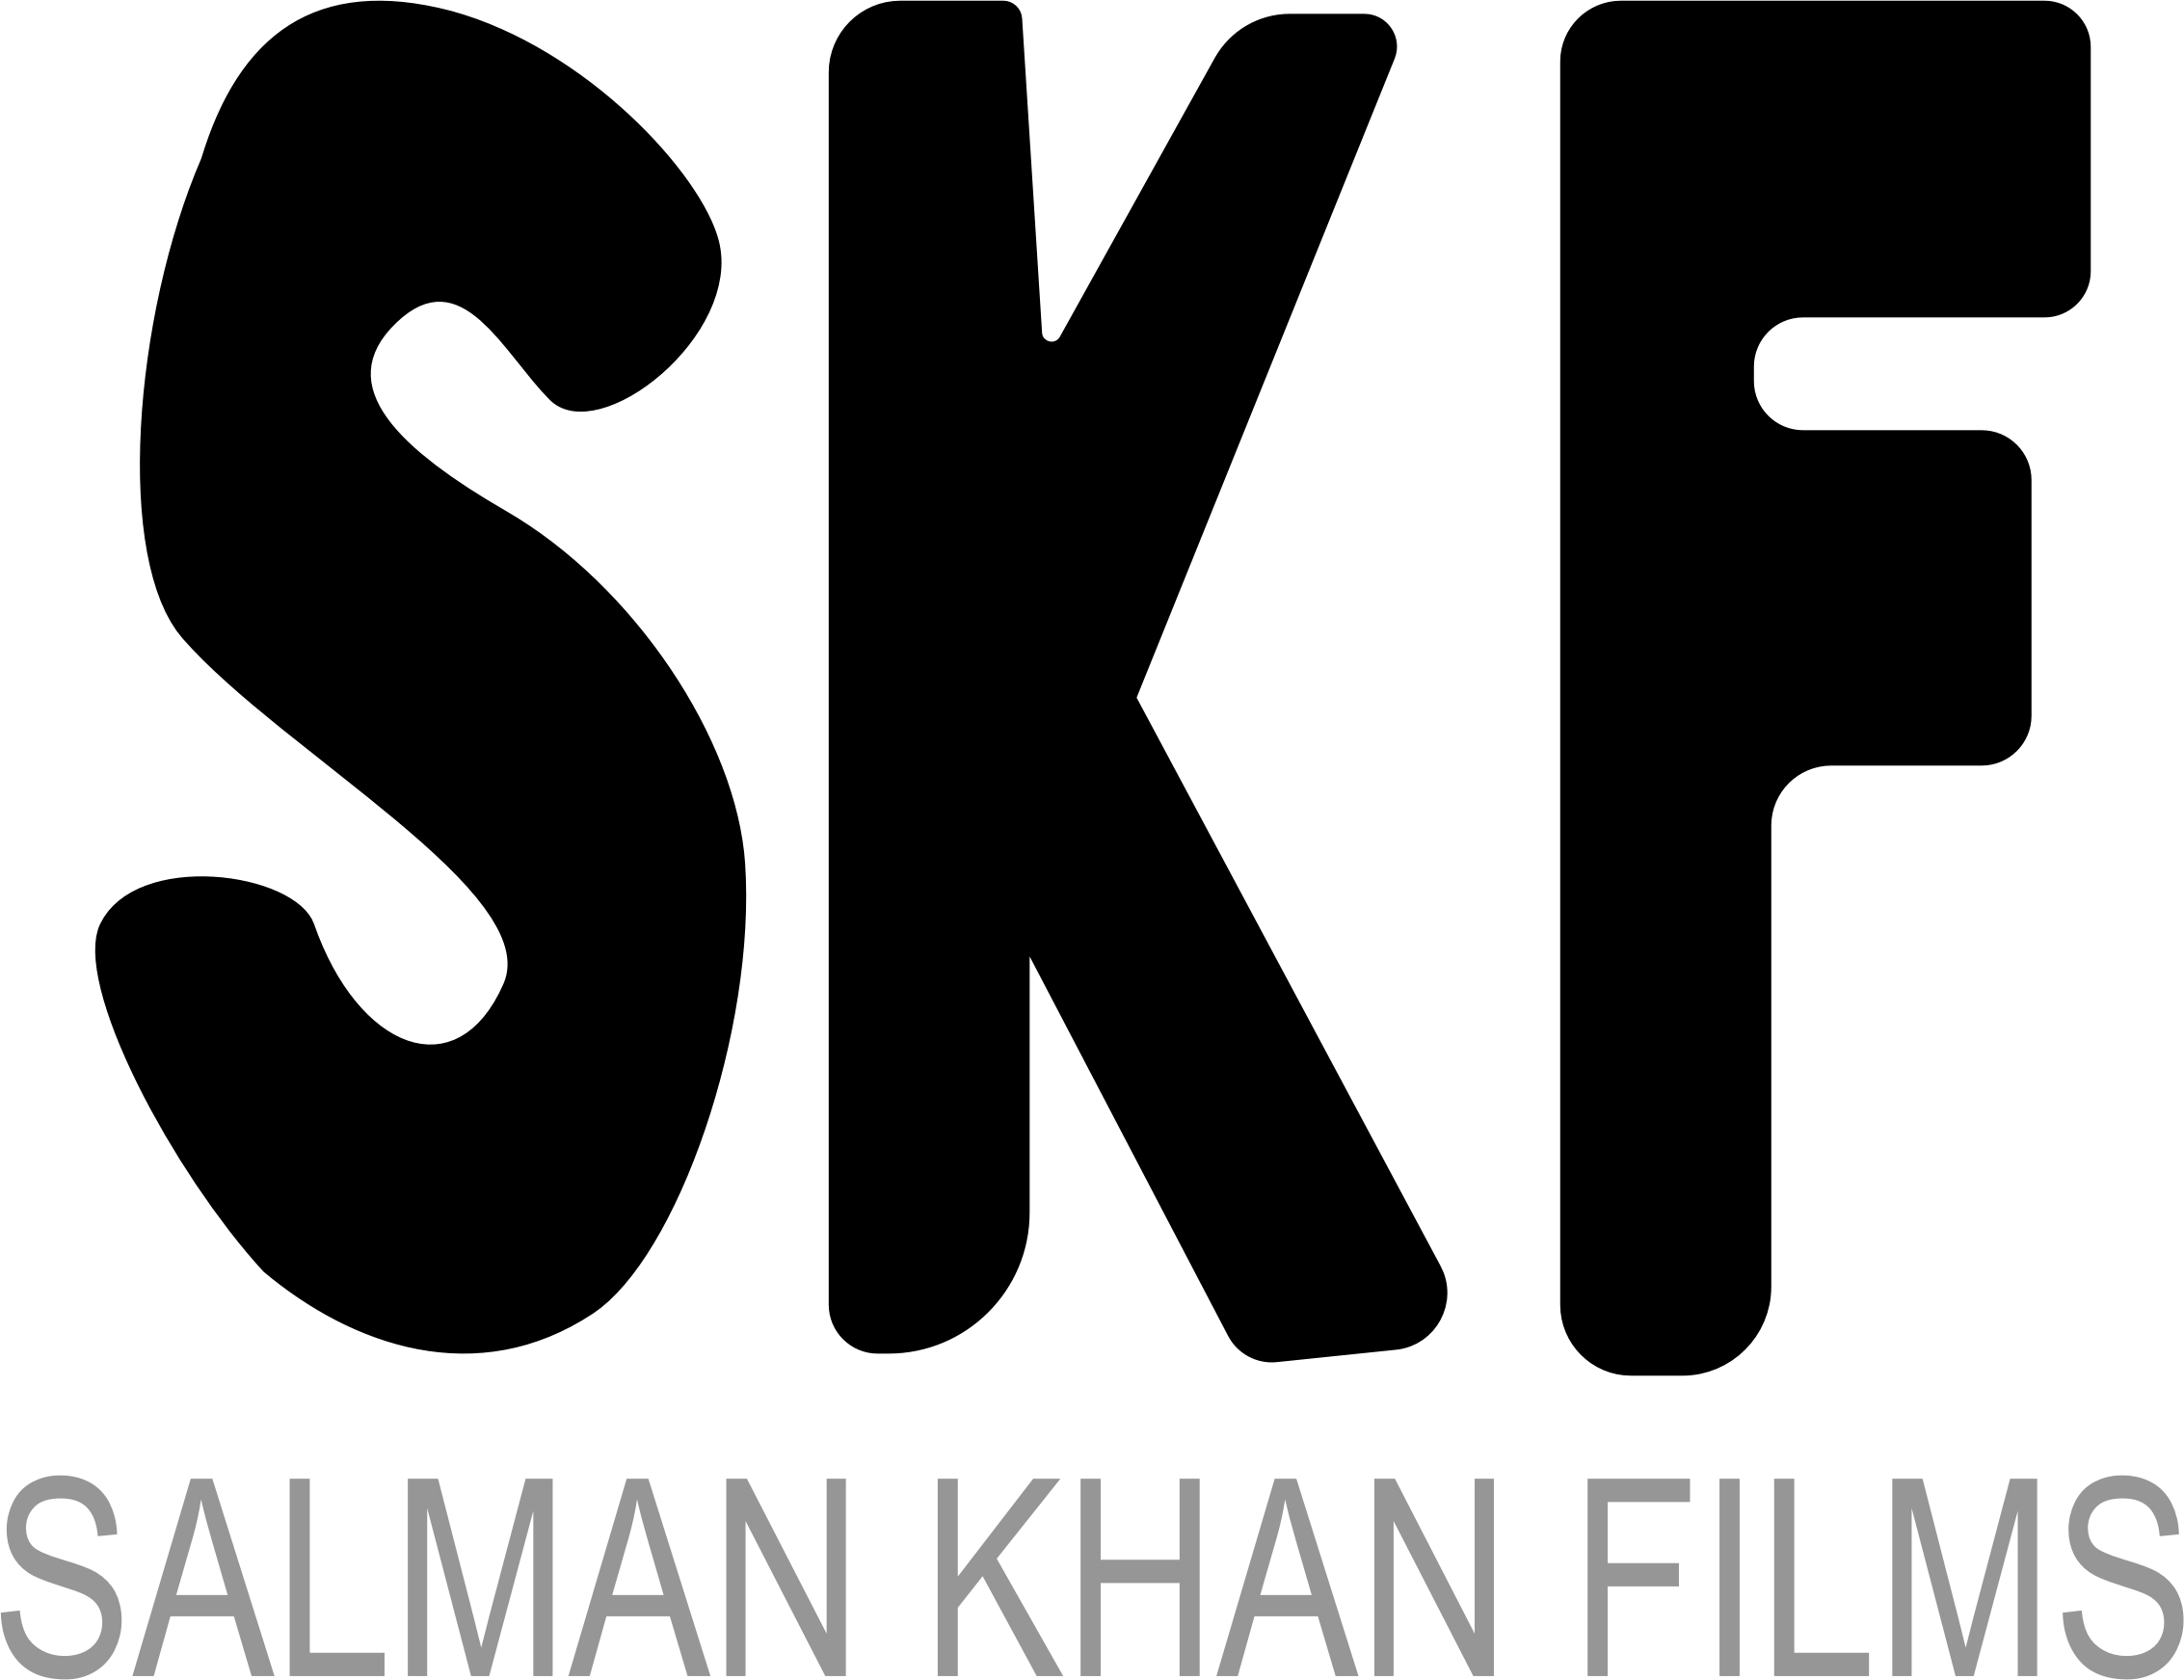 Salman Khan Films Typography (Request) by GDJ